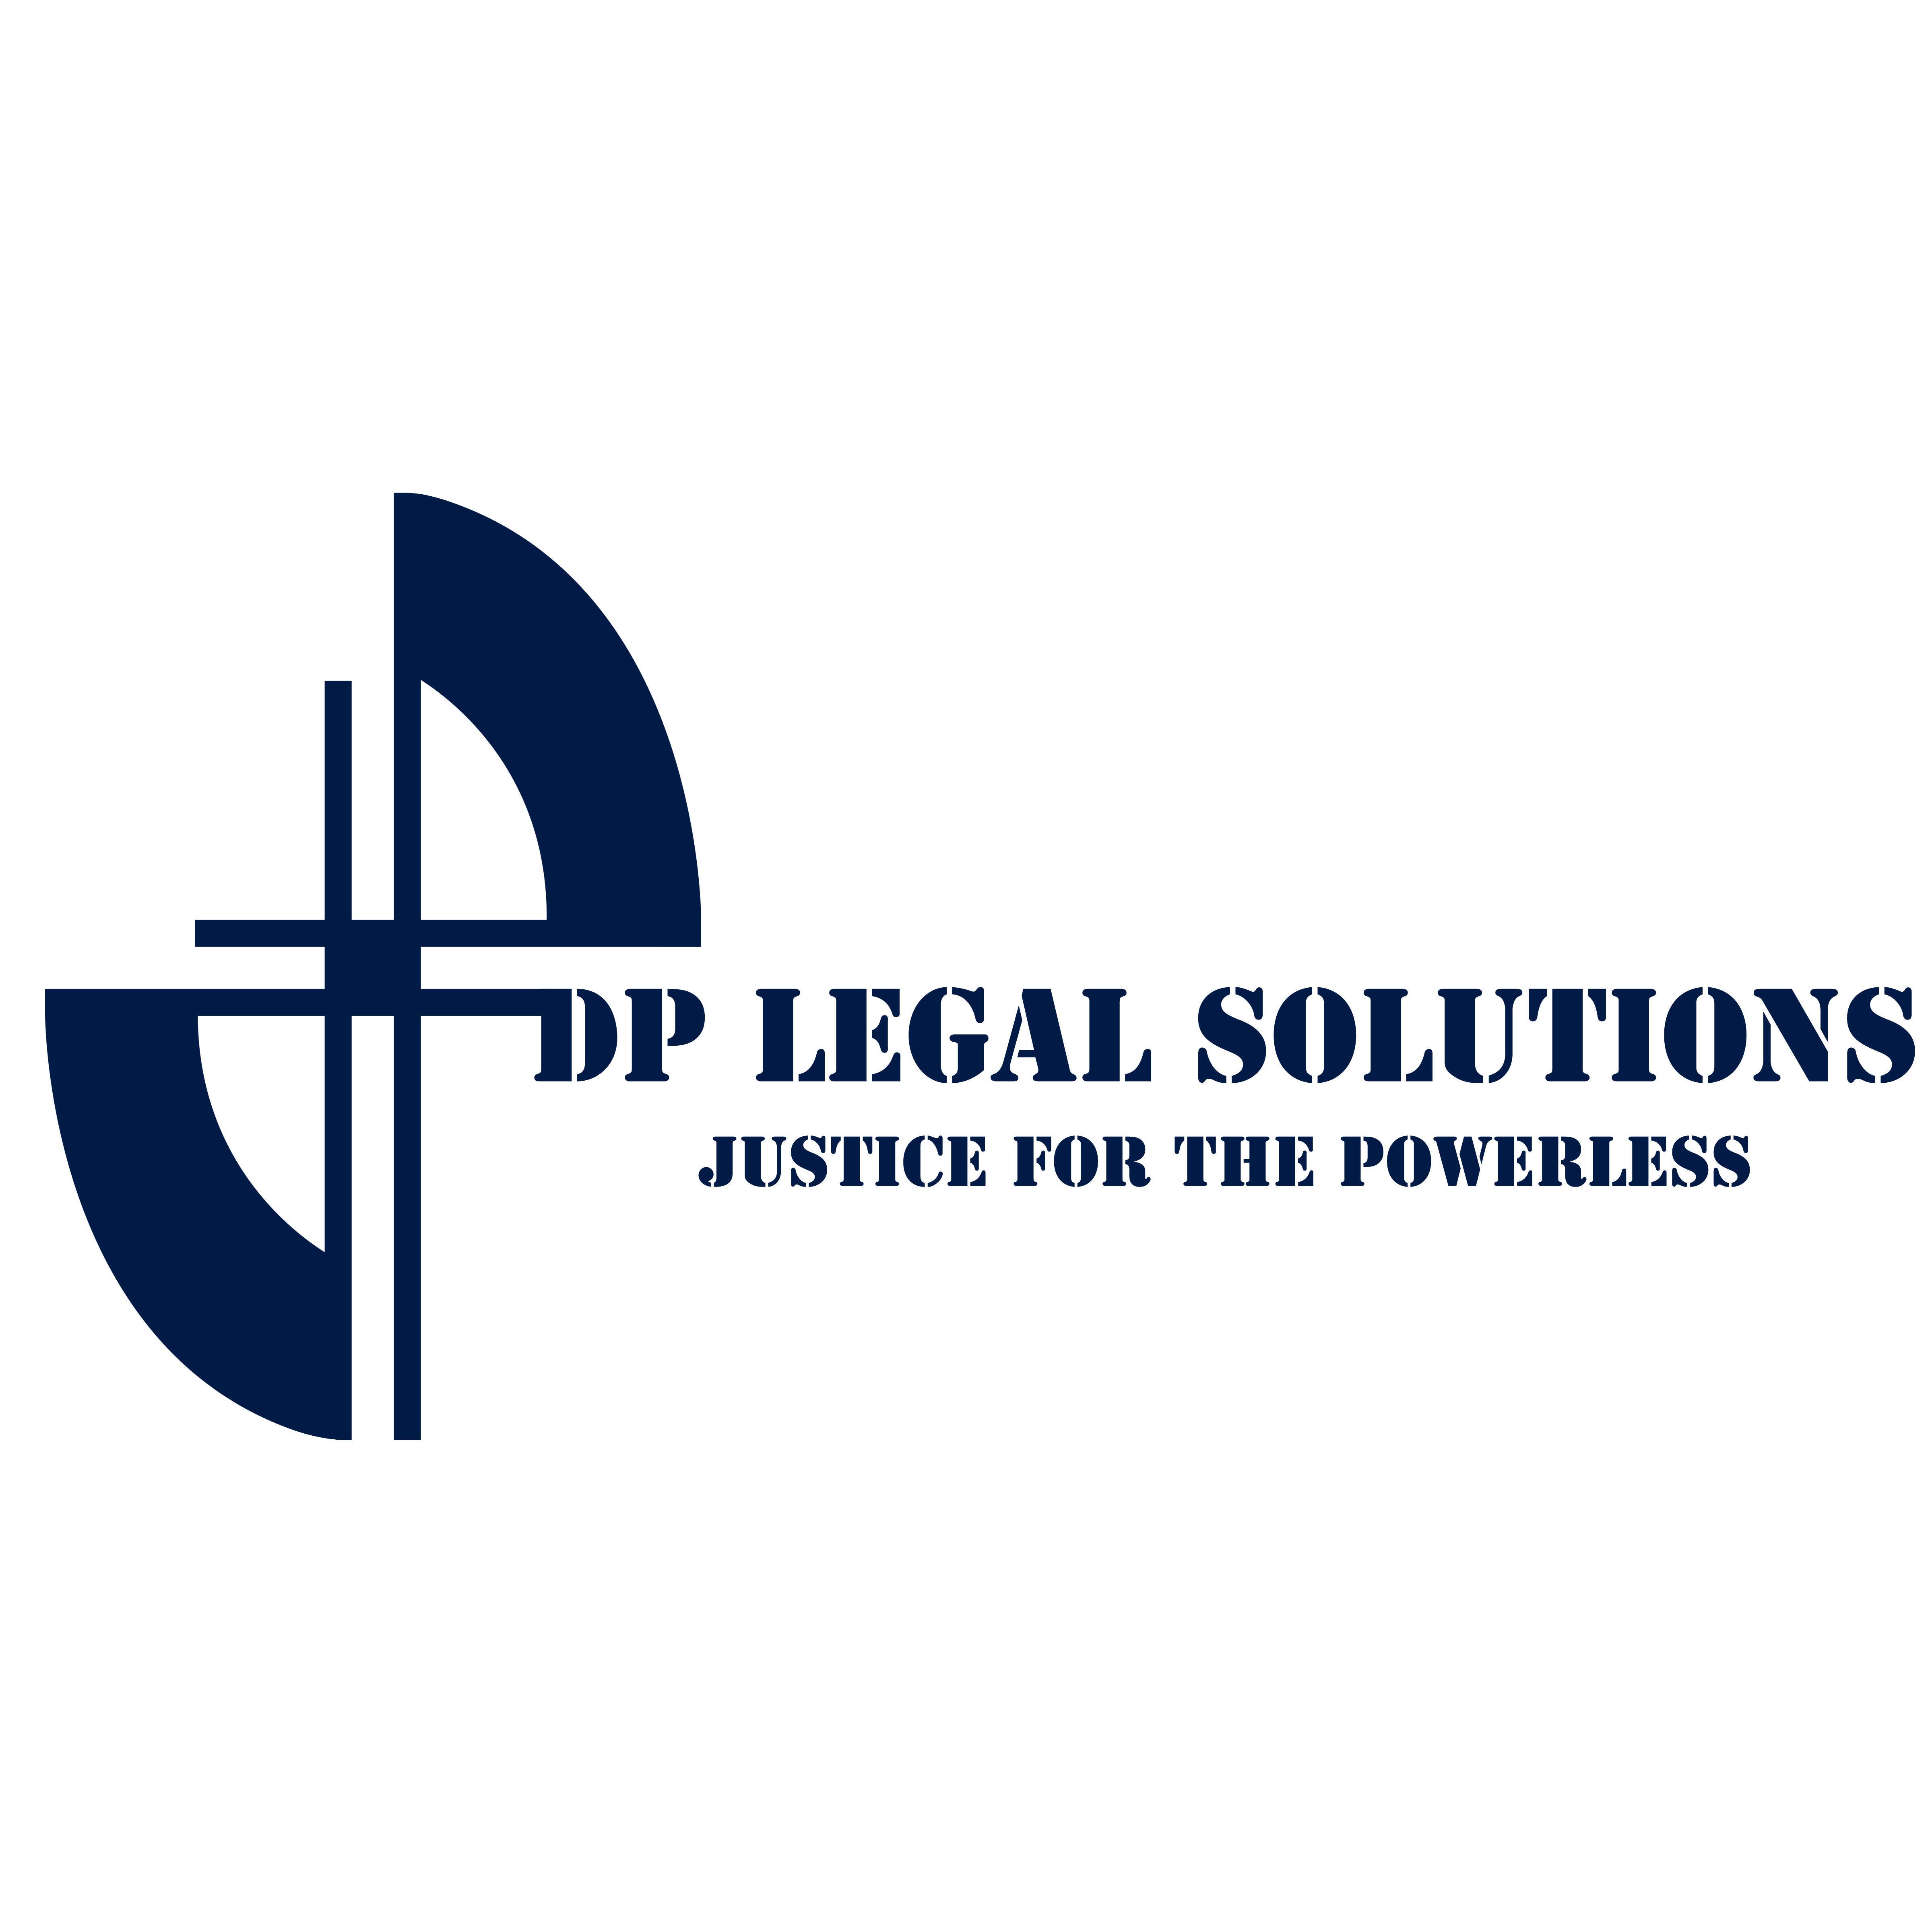 DP Legal Solutions image 1